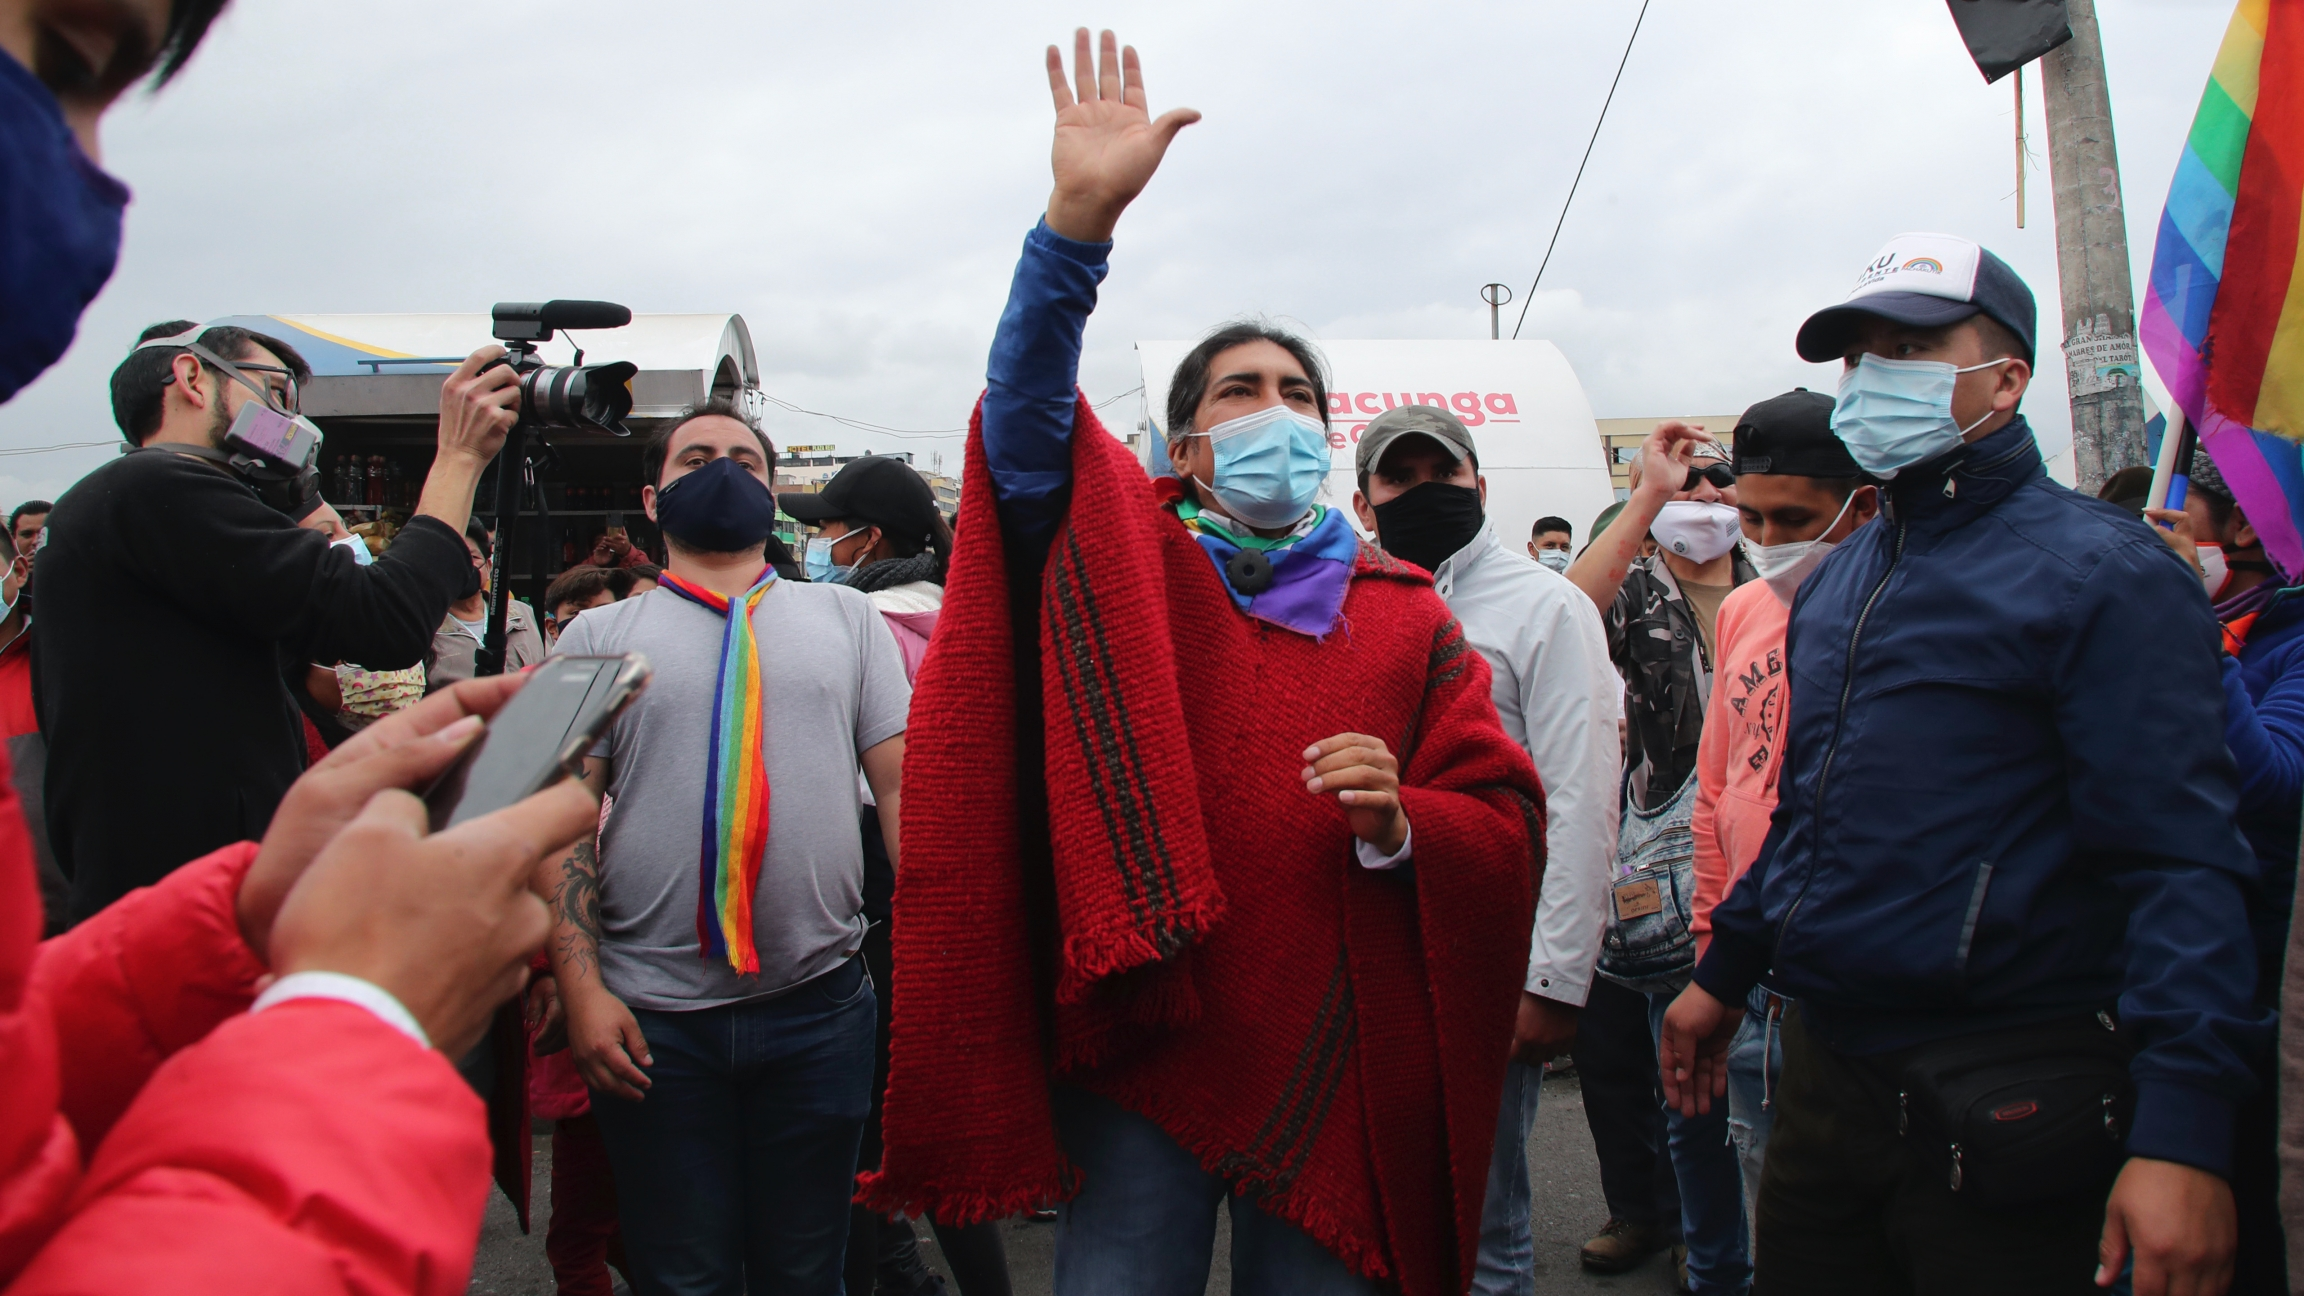 Presidential candidate Yaku Pérez greets supporters as he leads a protest march to Quito, in Latacunga, Ecuador, Feb. 22, 2021. Pérez, who came in a close third in the recent elections, has alleged fraud after the results indicated he had fallen just shor